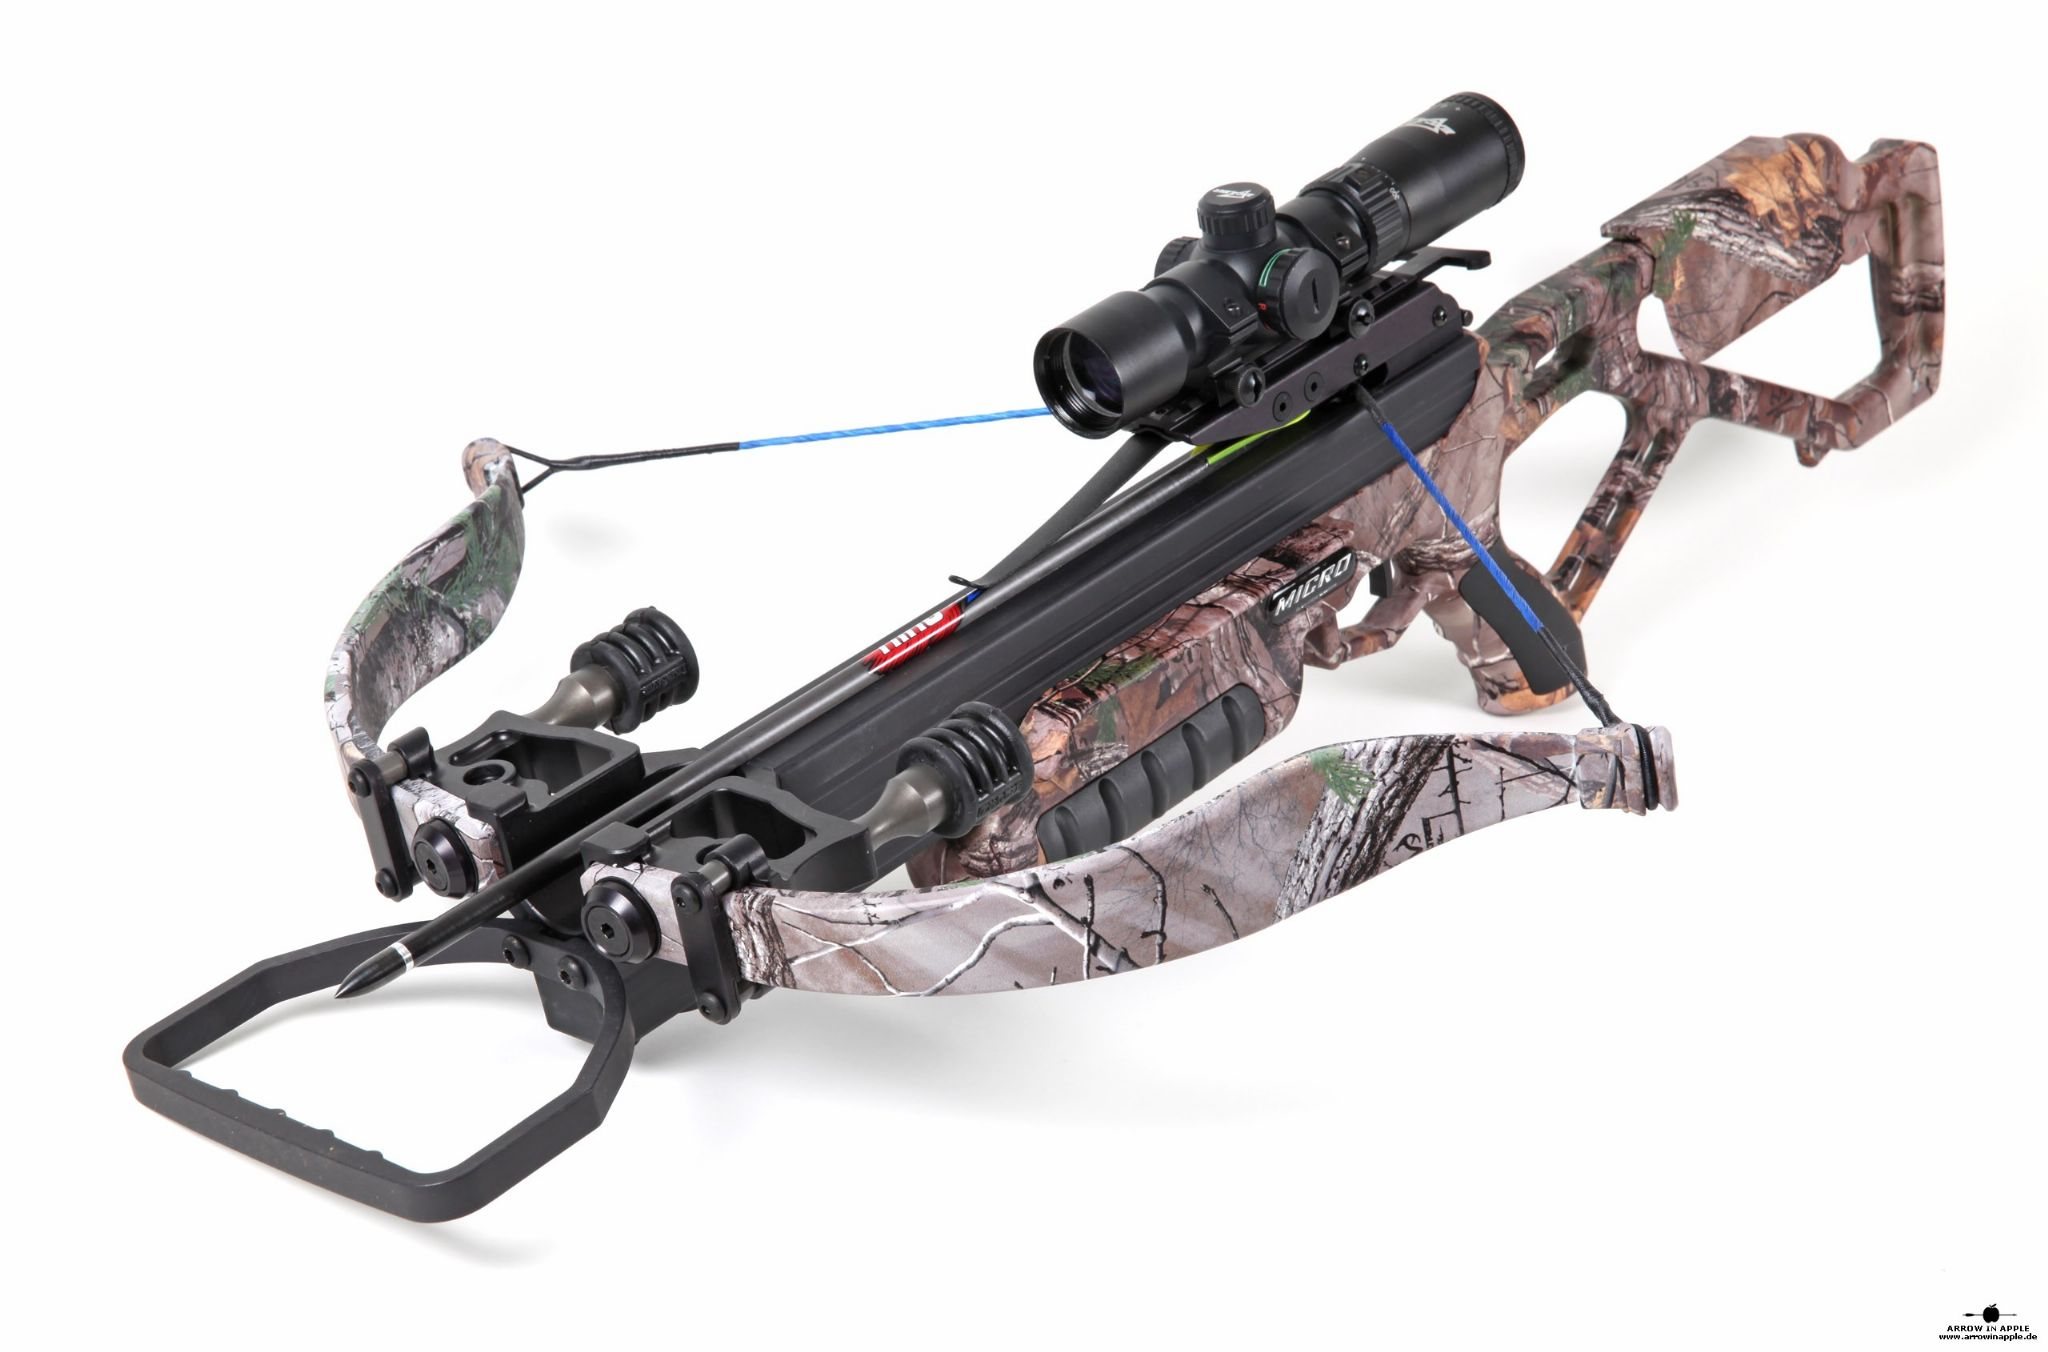 Excalibur Matrix Micro 355 crossbow package from Excalibur